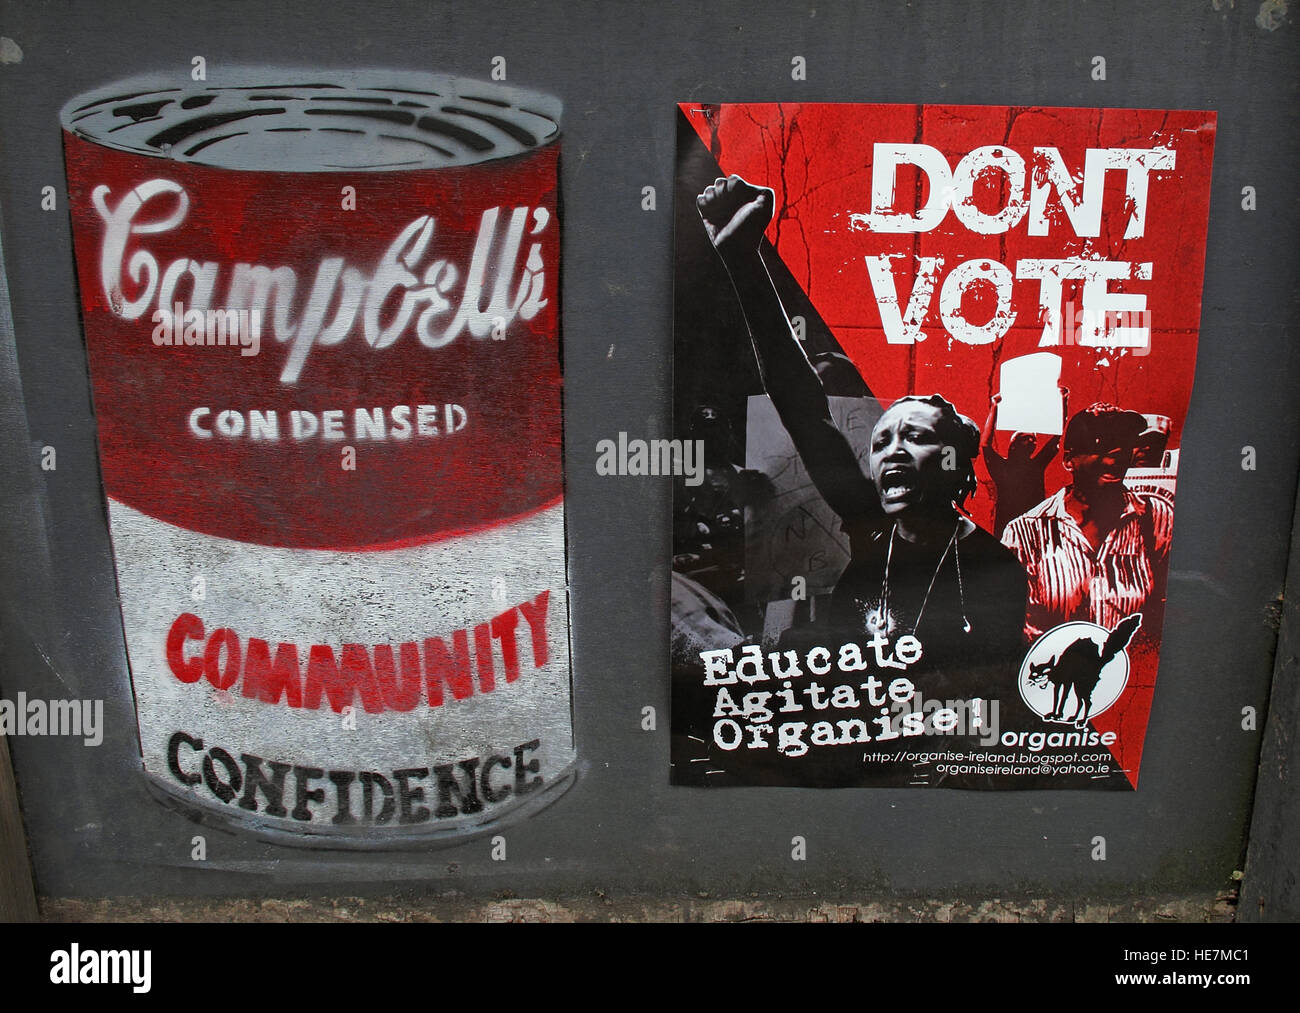 Dont Vote, Community Confidence,Educate,Agitate,Organise,Belfast Garfield St        City Centre, Northern Ireland, - Stock Image